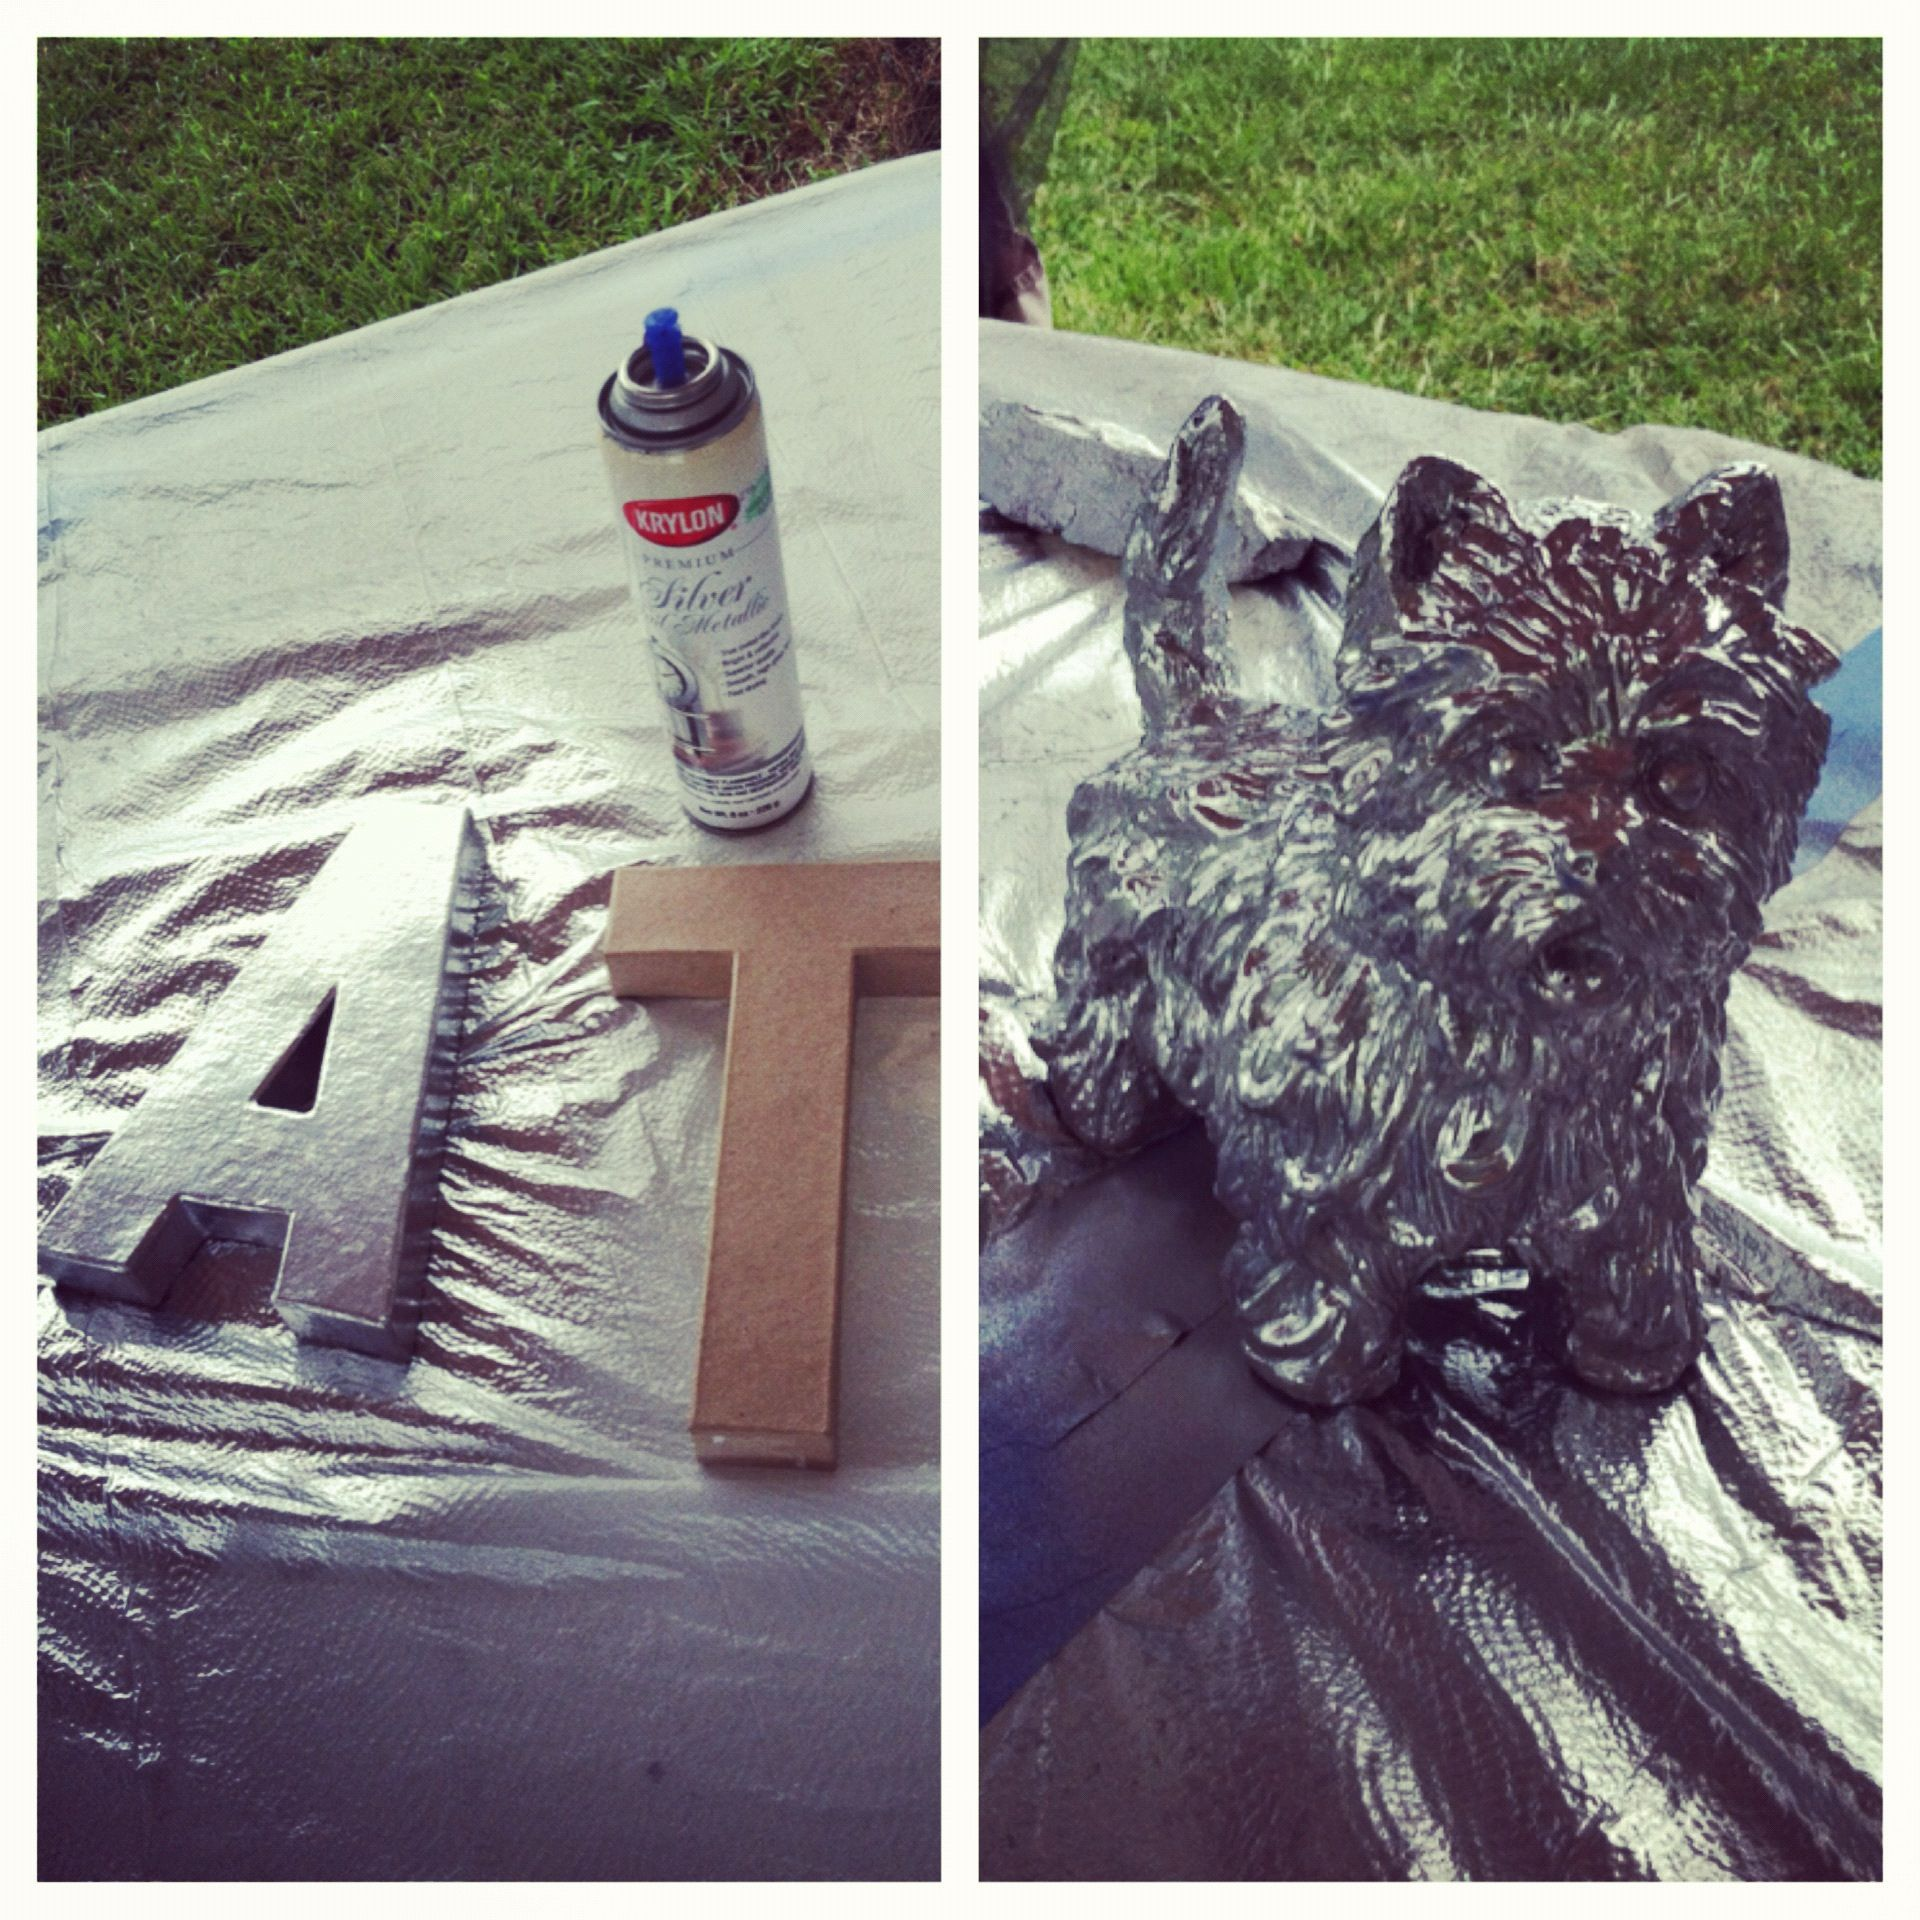 krylon silver foil metallic spray paint cardboard letters from hobby lobby resin dog statue